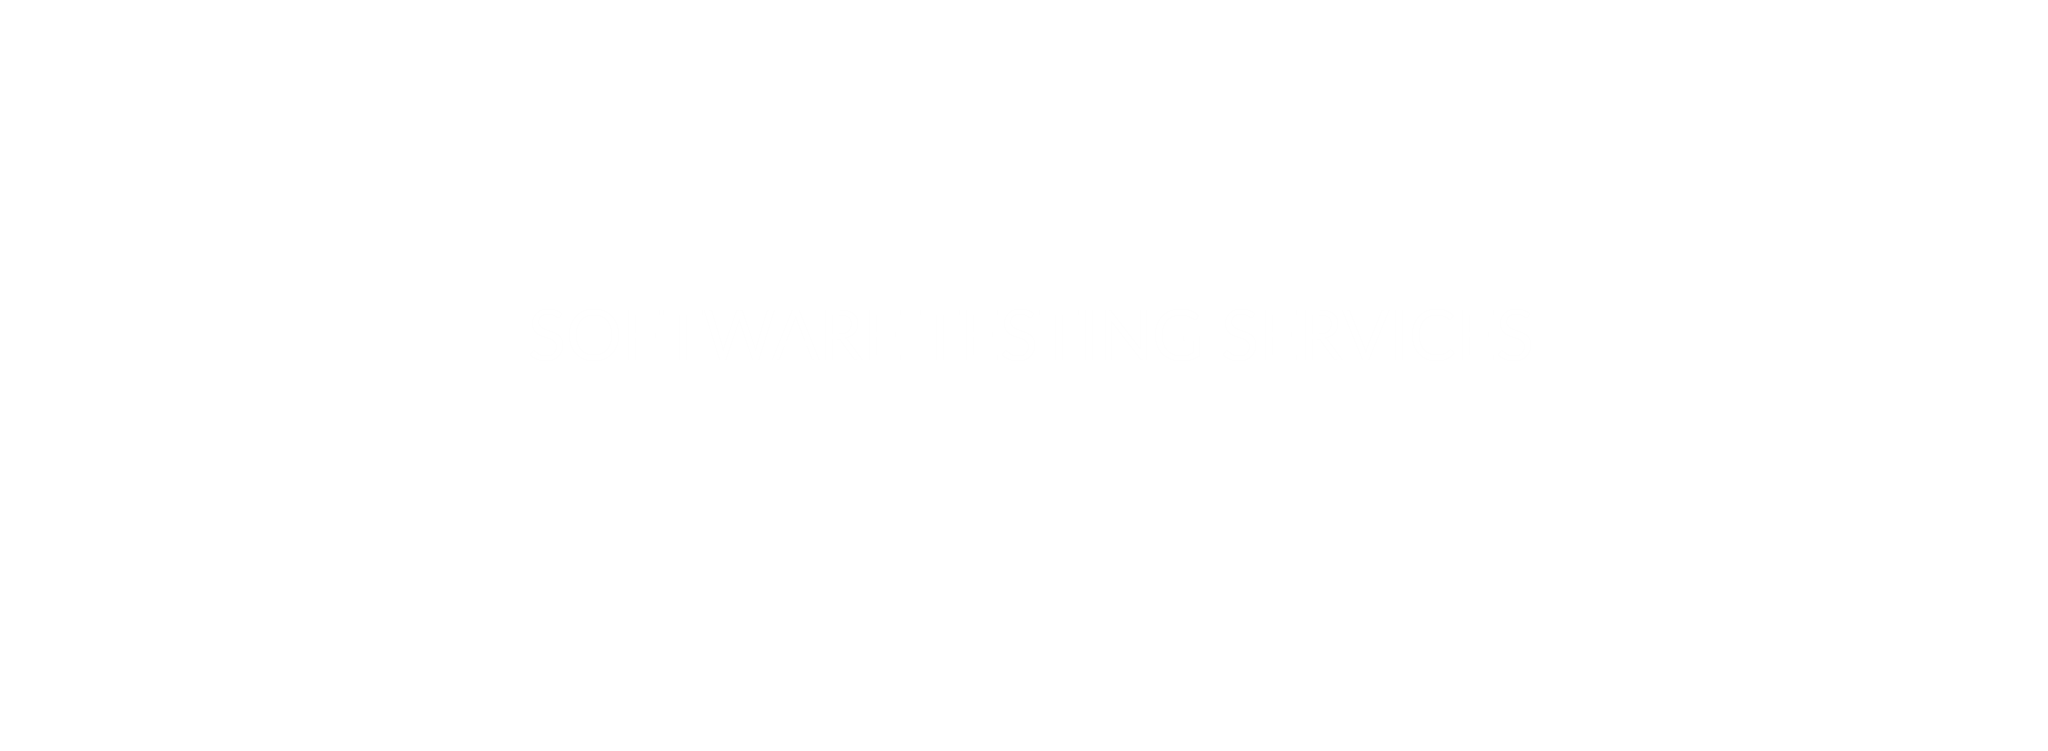 Software Testing Services Heading